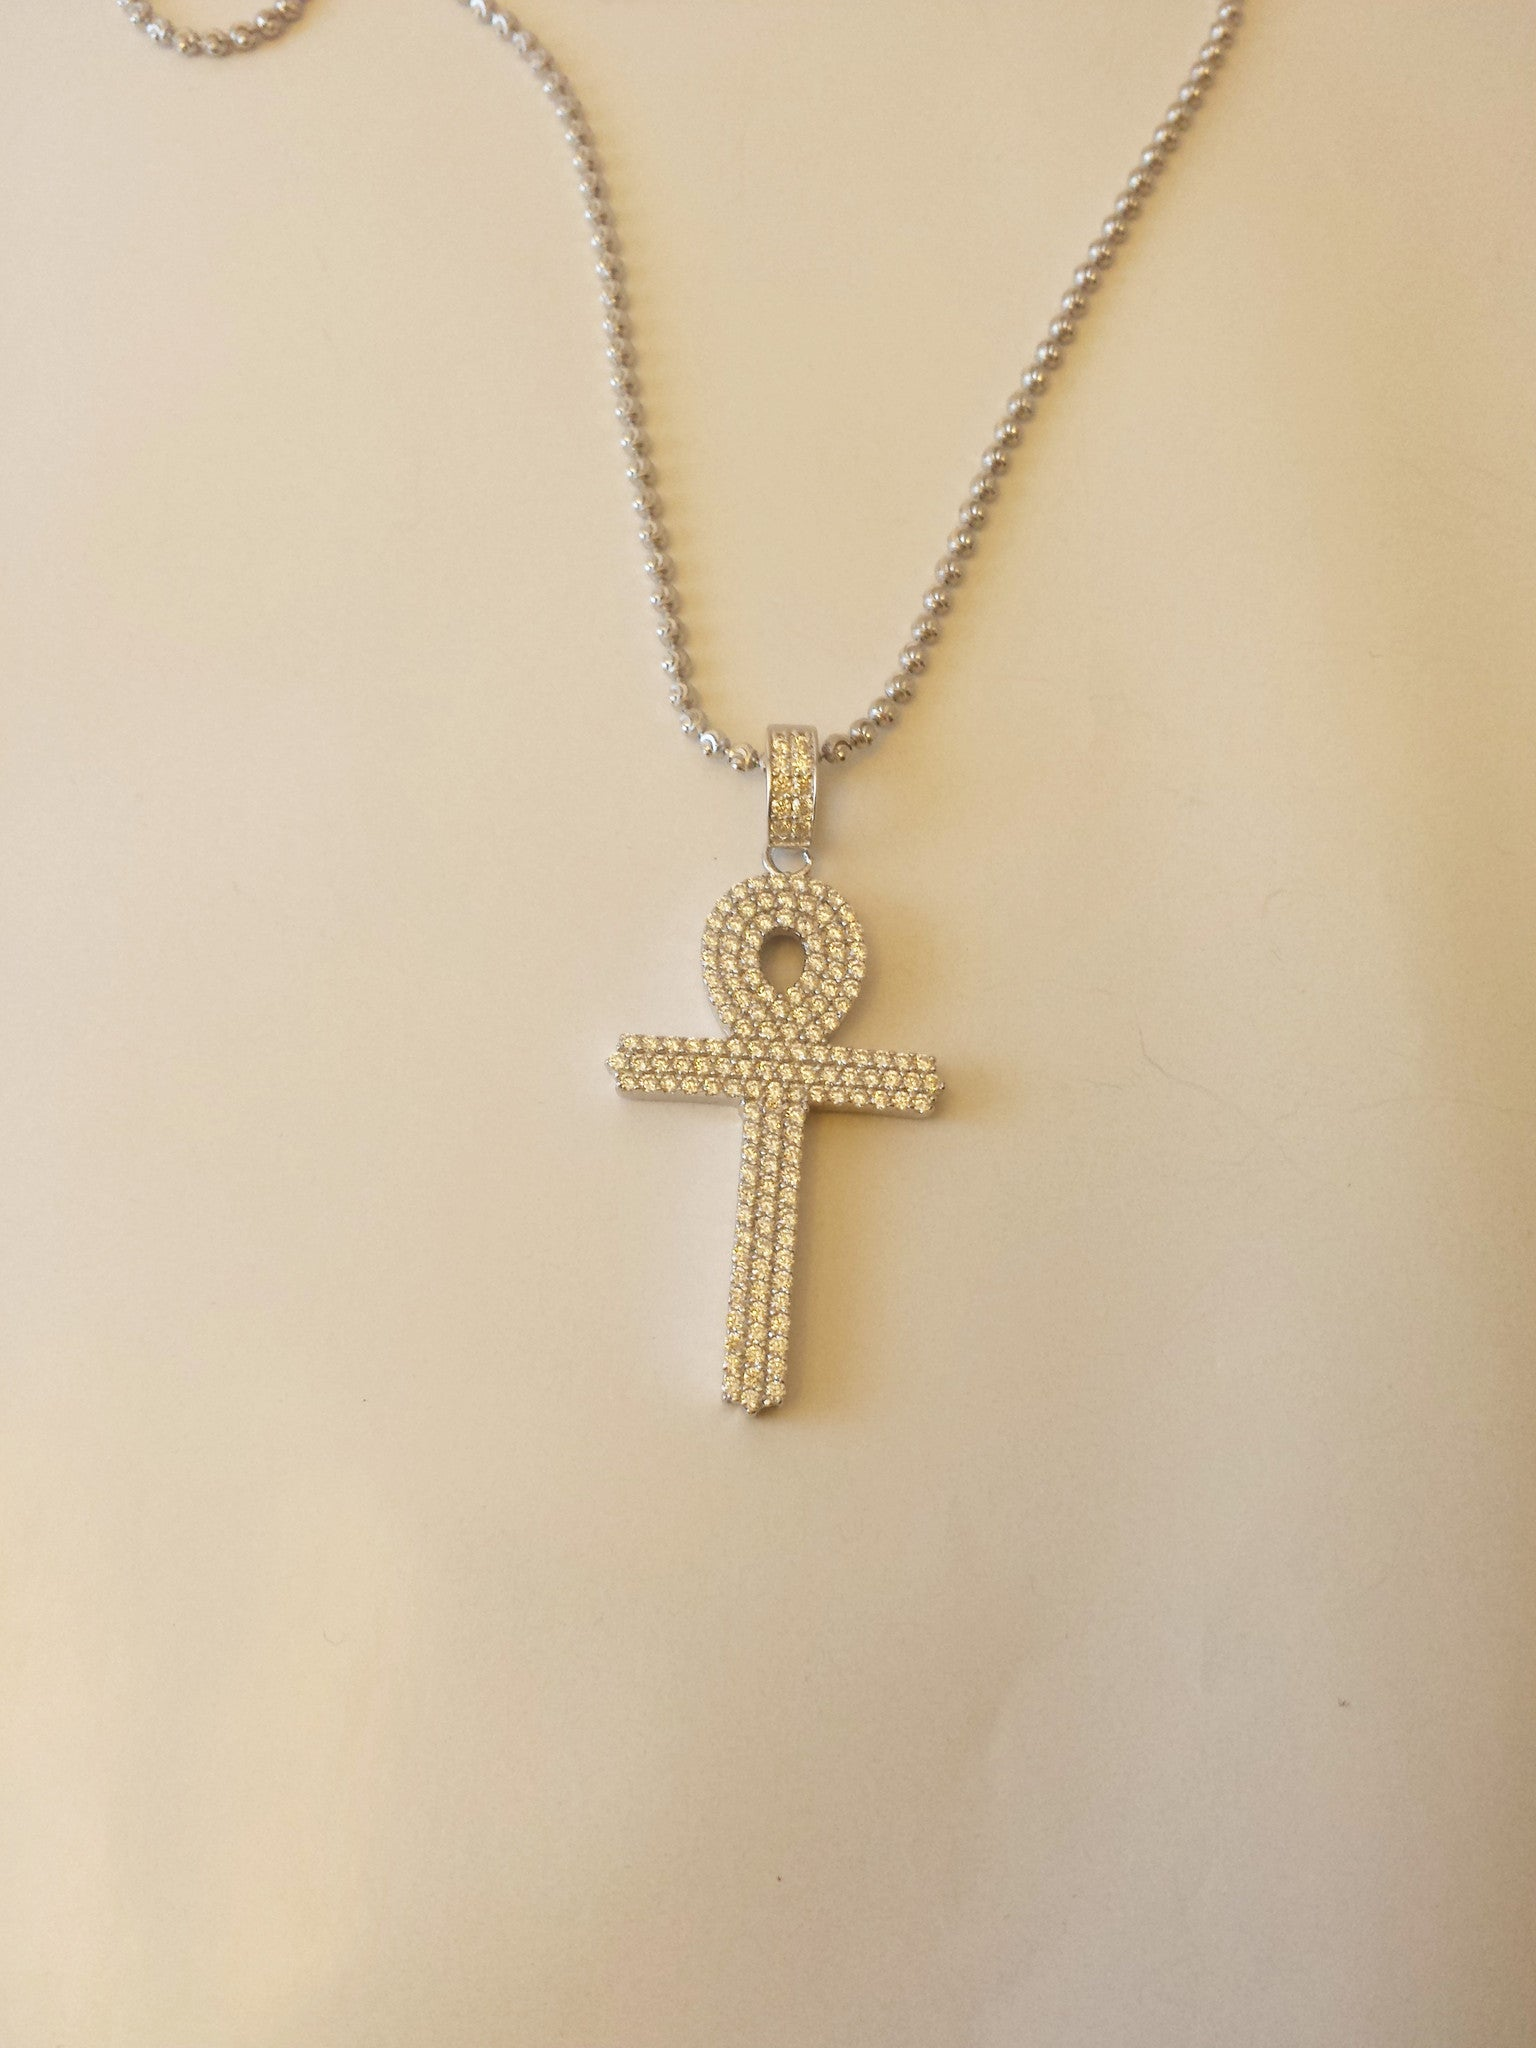 Super Iced Out Ankh Cross